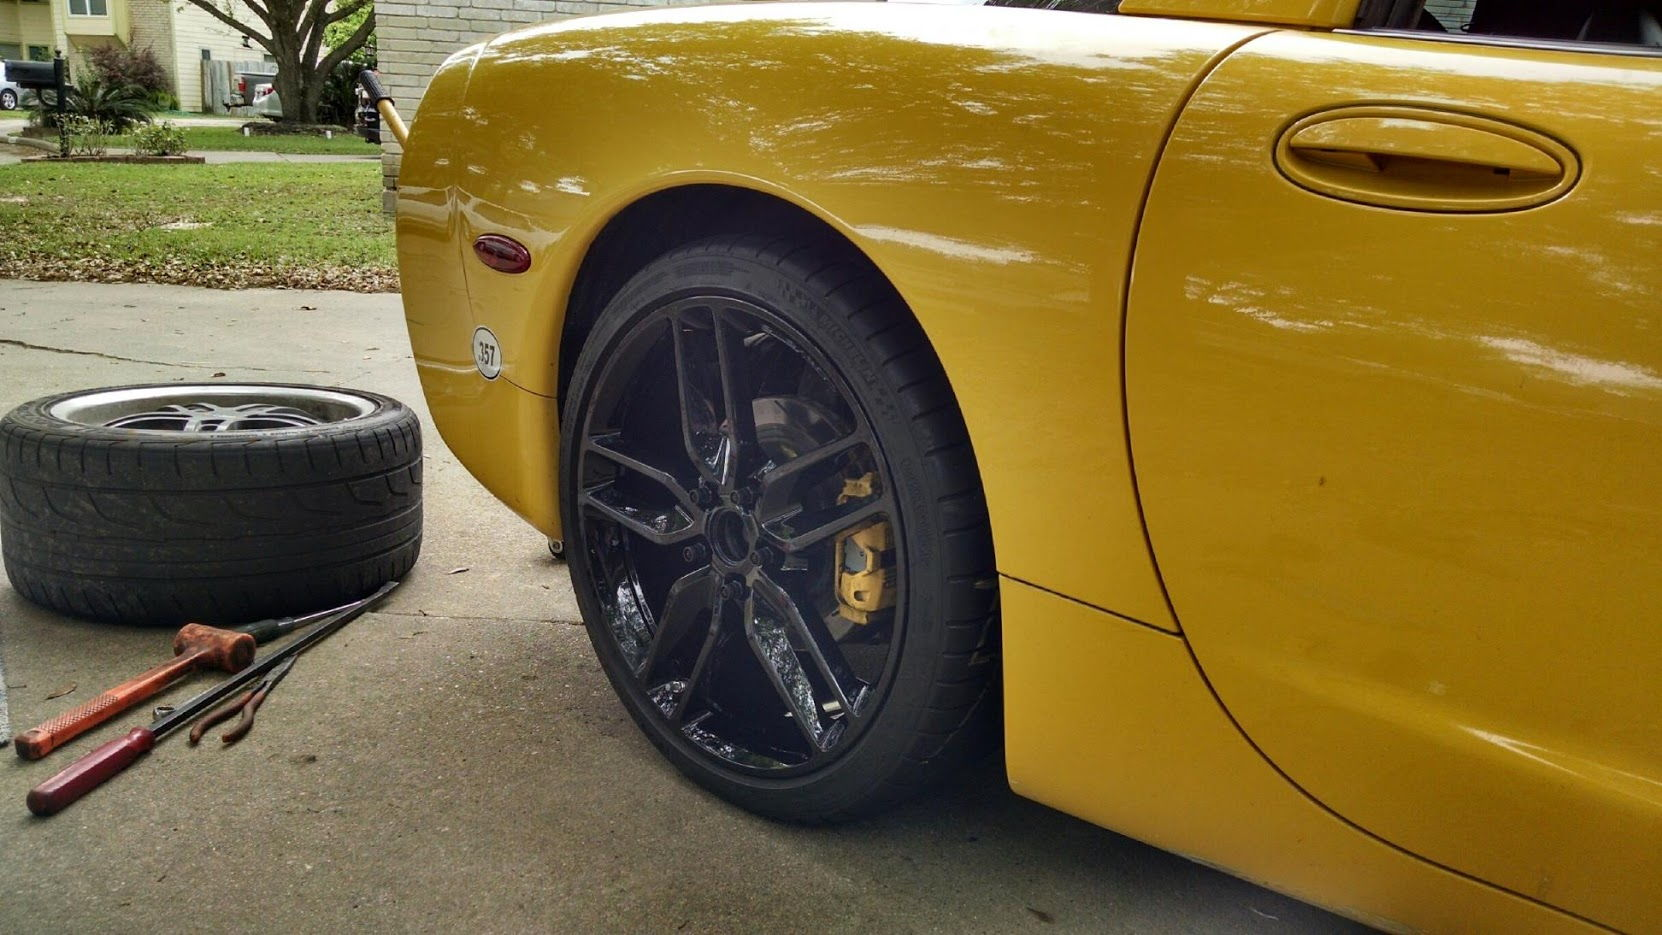 new shoes for my millenium yellow 2004 c5 corvetteforum chevrolet corvette forum discussion. Black Bedroom Furniture Sets. Home Design Ideas